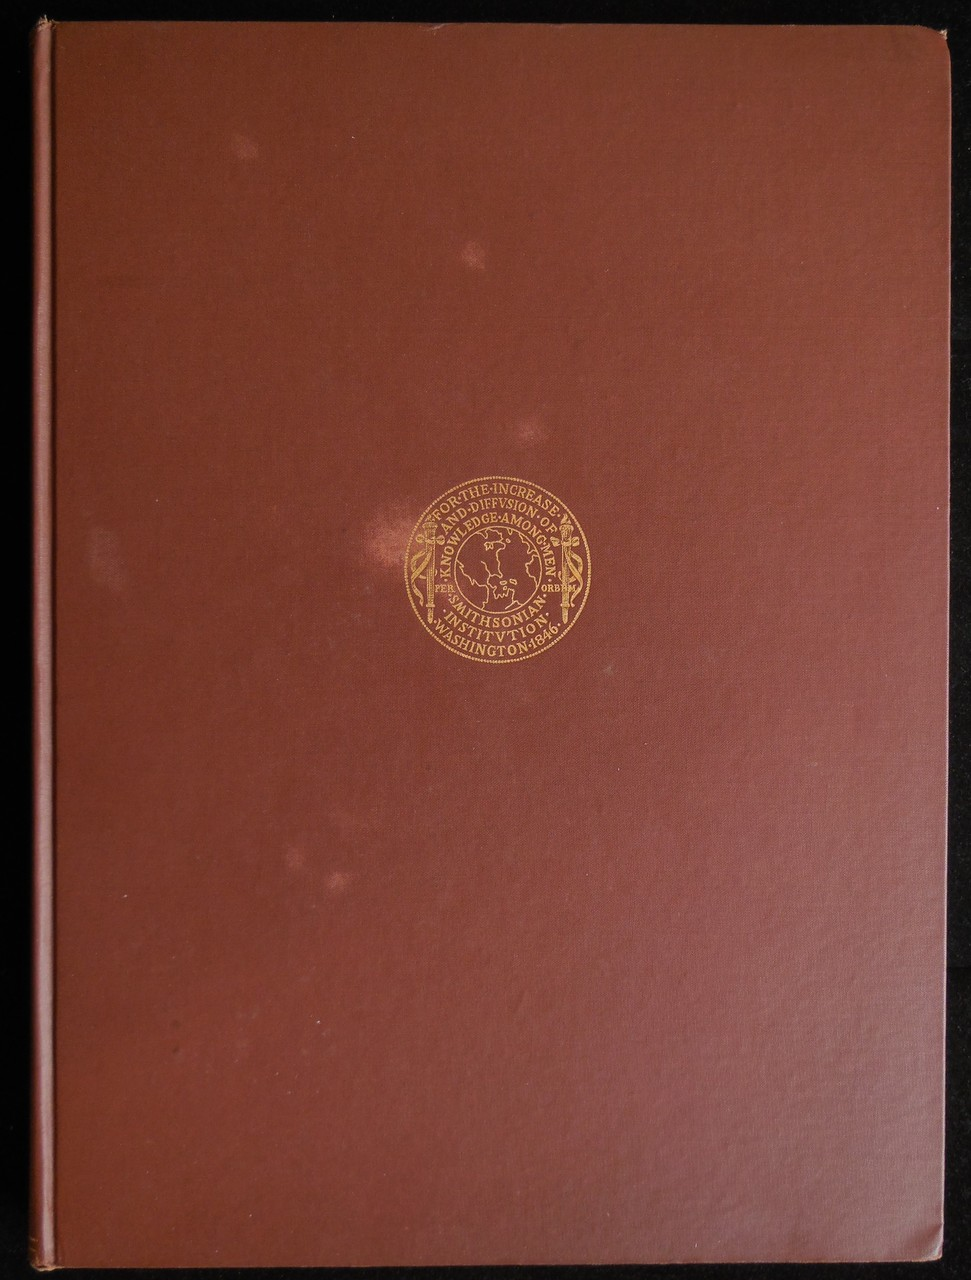 A DESCRIPTIVE AND ILLUSTRATIVE CATALOGUE OF CHINESE BRONZES, by A.G. Wenley - 1946